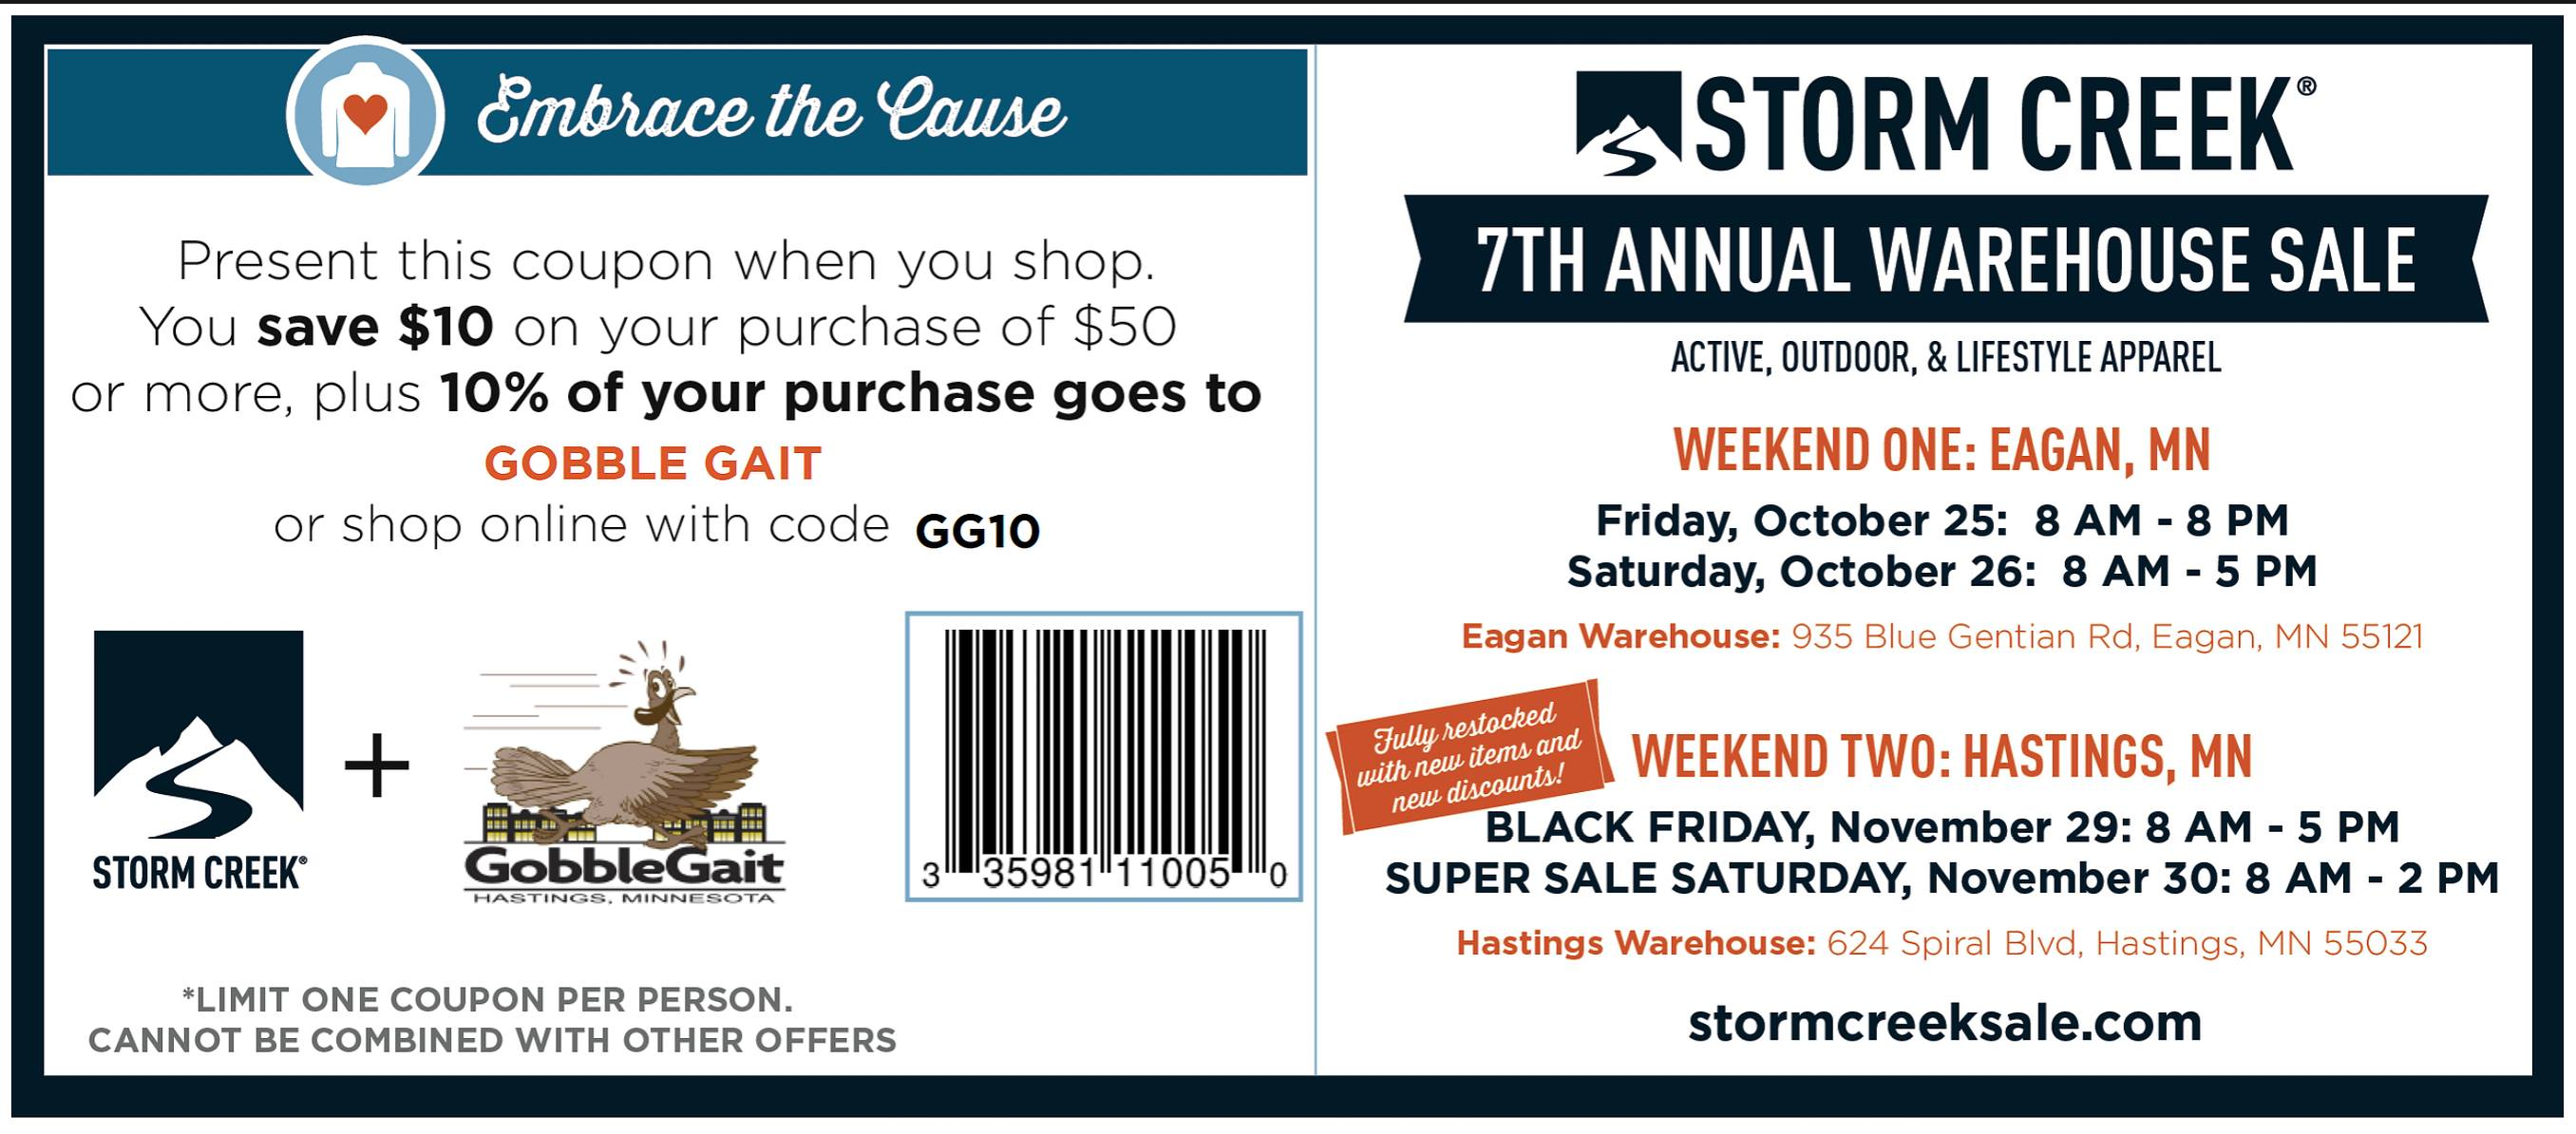 Storm Creek Warehouse Sale